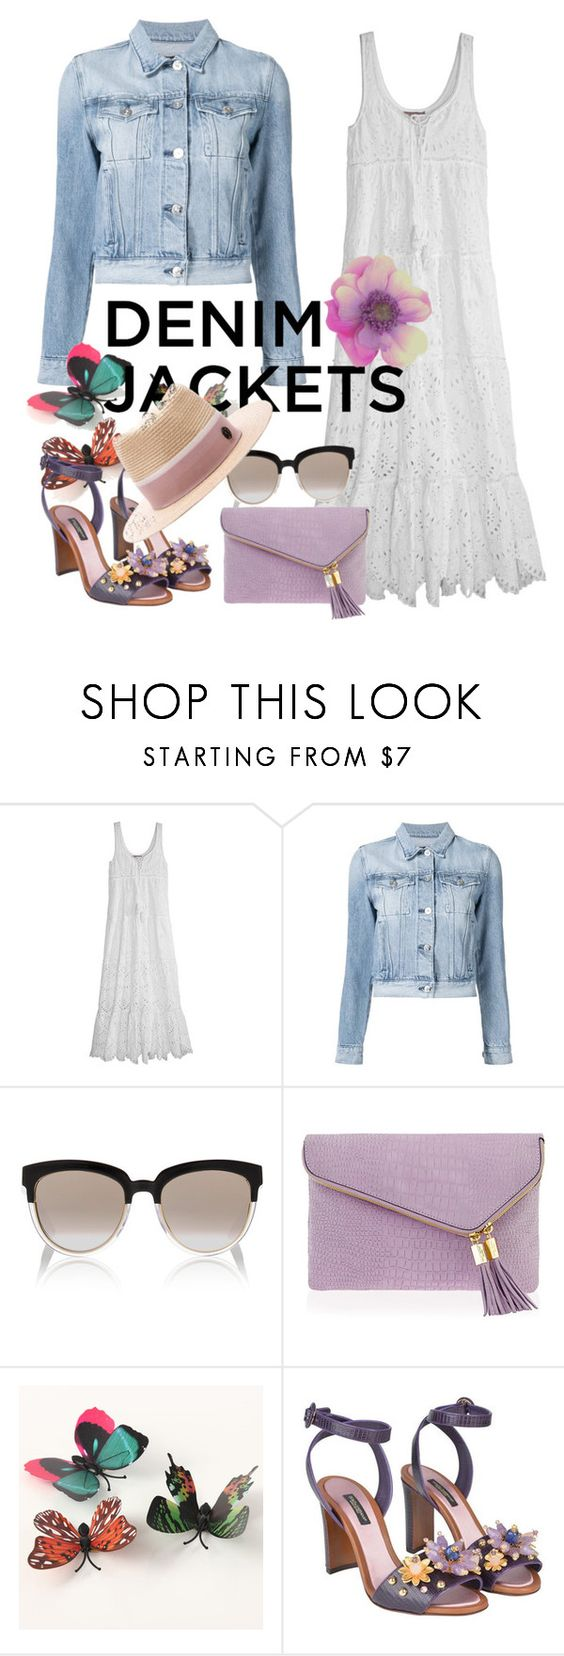 """Untitled #447"" by m-jelic ❤ liked on Polyvore featuring Calypso St. Barth, 3x1, Christian Dior, Henri Bendel, Dolce&Gabbana, Maison Michel, denimjackets and WardrobeStaples"